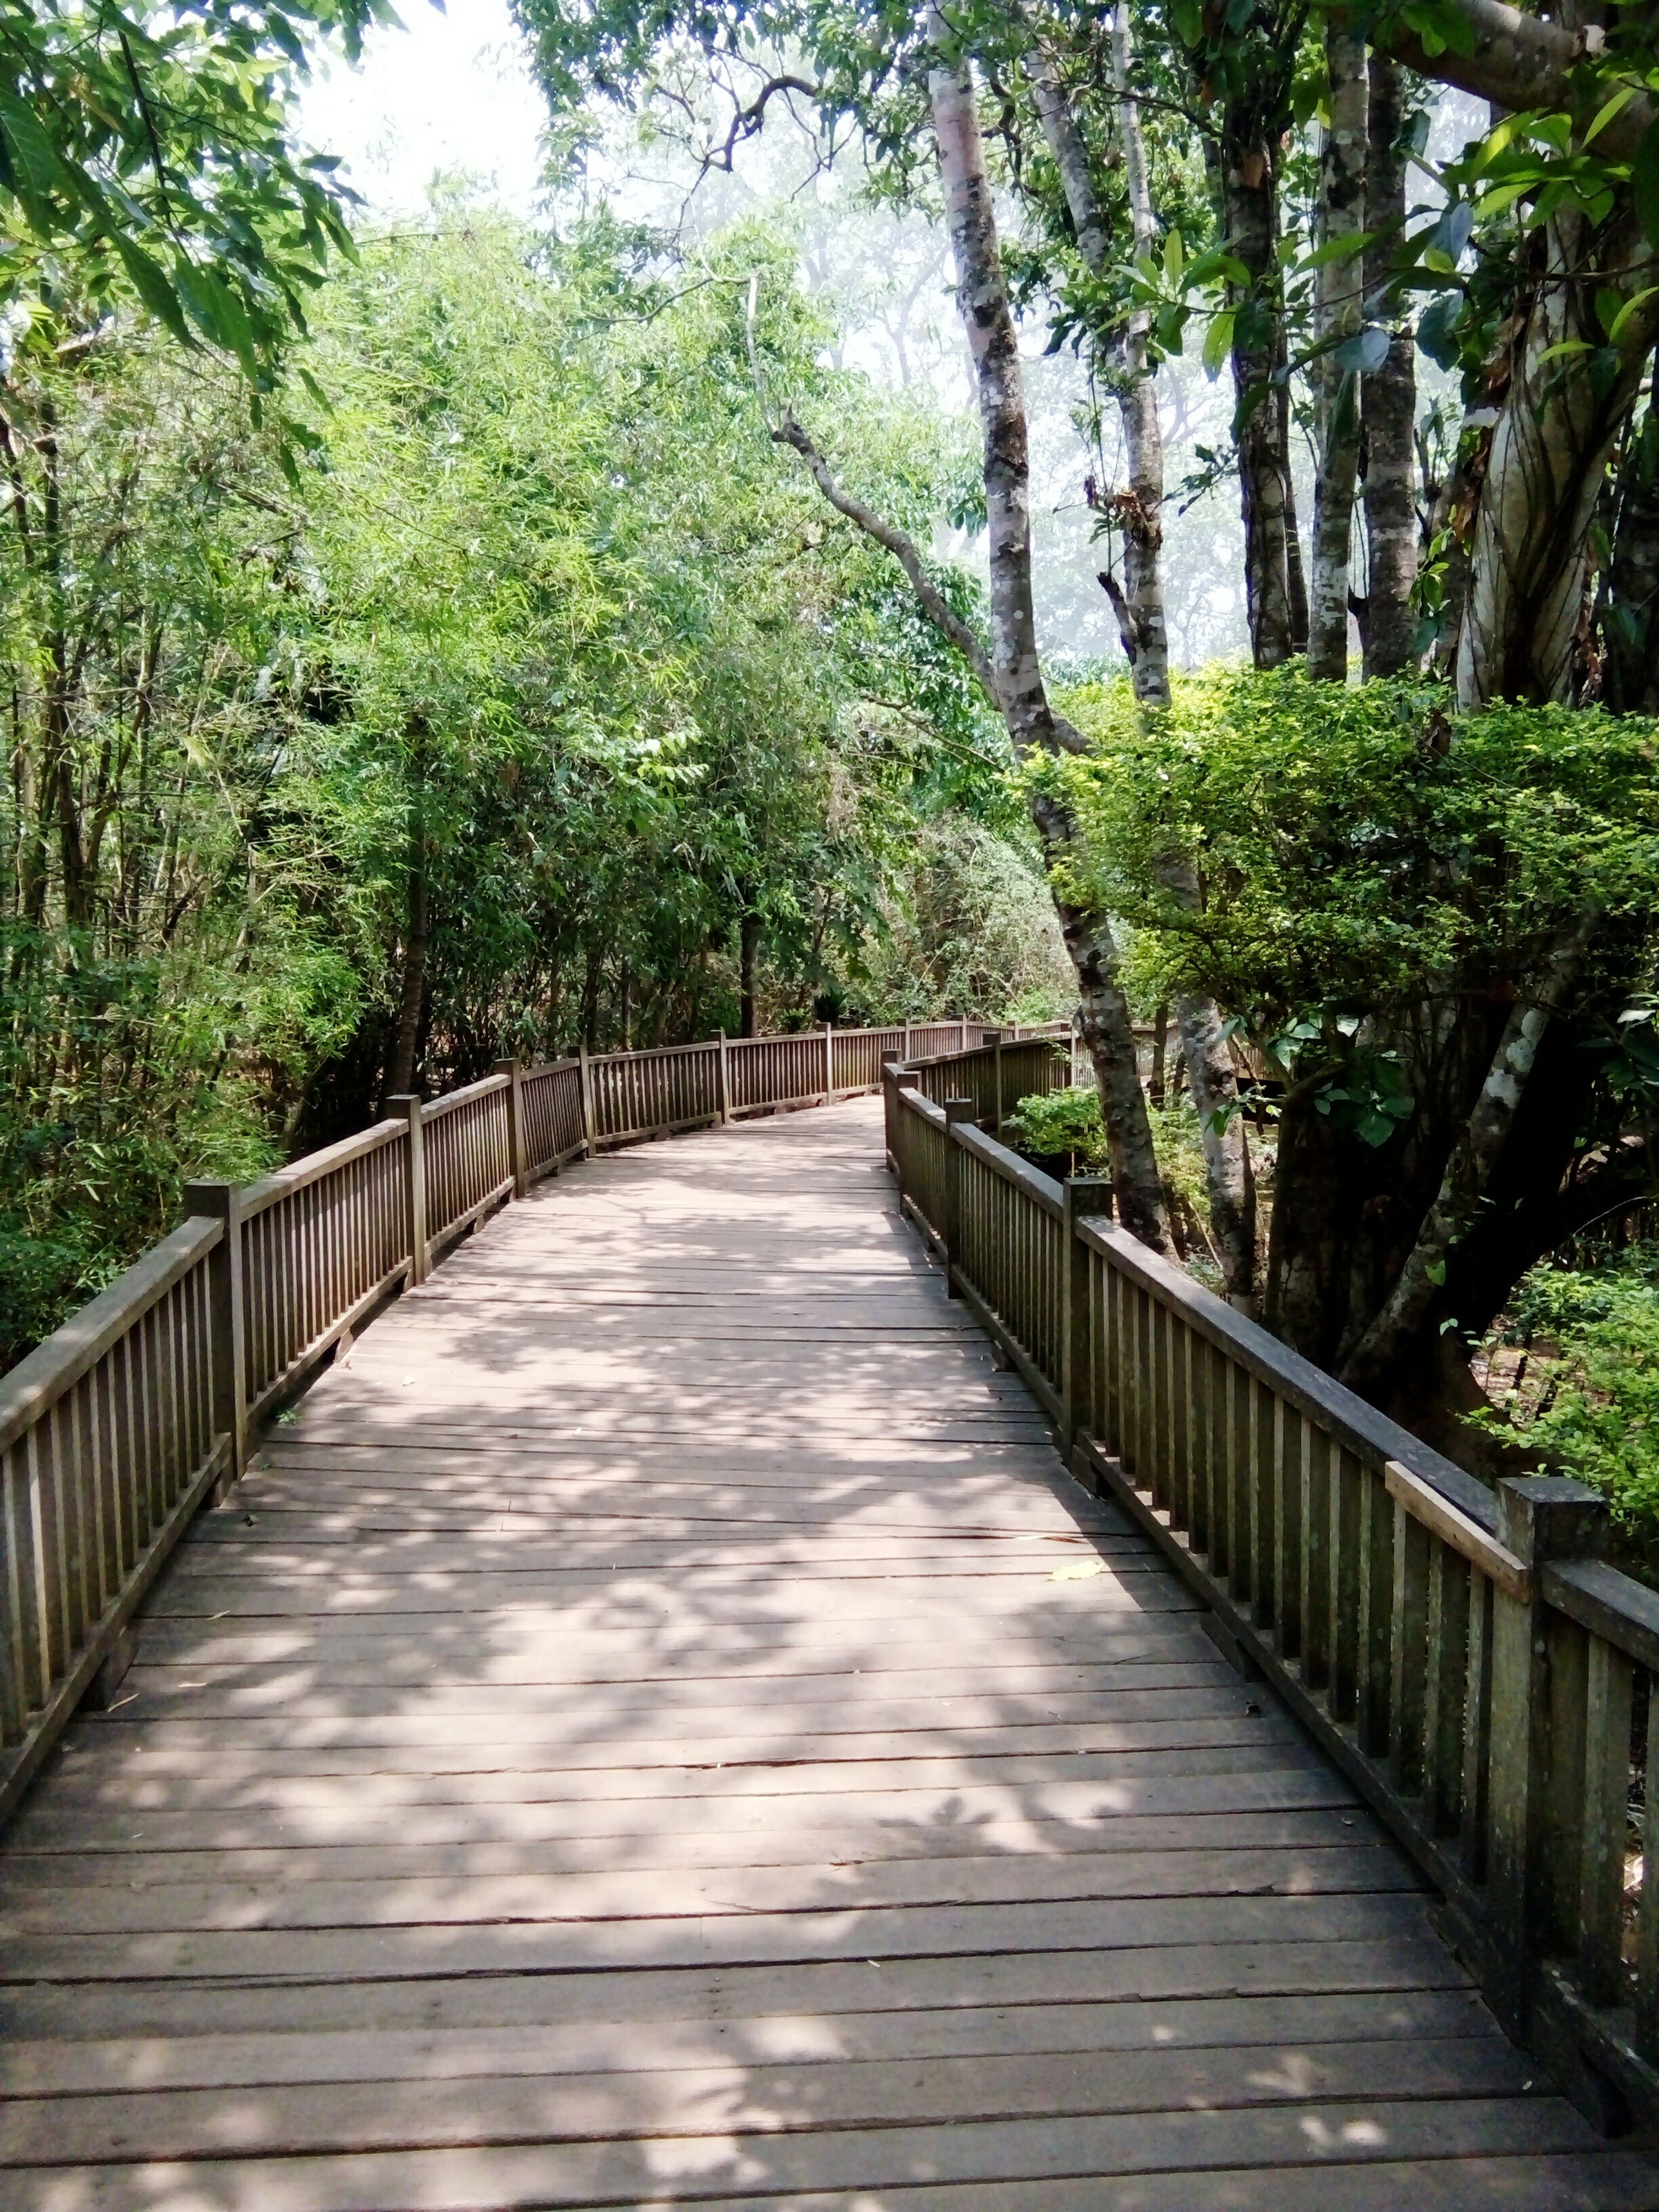 tree, the way forward, footbridge, railing, connection, tranquility, forest, diminishing perspective, growth, bridge - man made structure, tranquil scene, green color, nature, beauty in nature, vanishing point, walkway, narrow, scenics, lush foliage, footpath